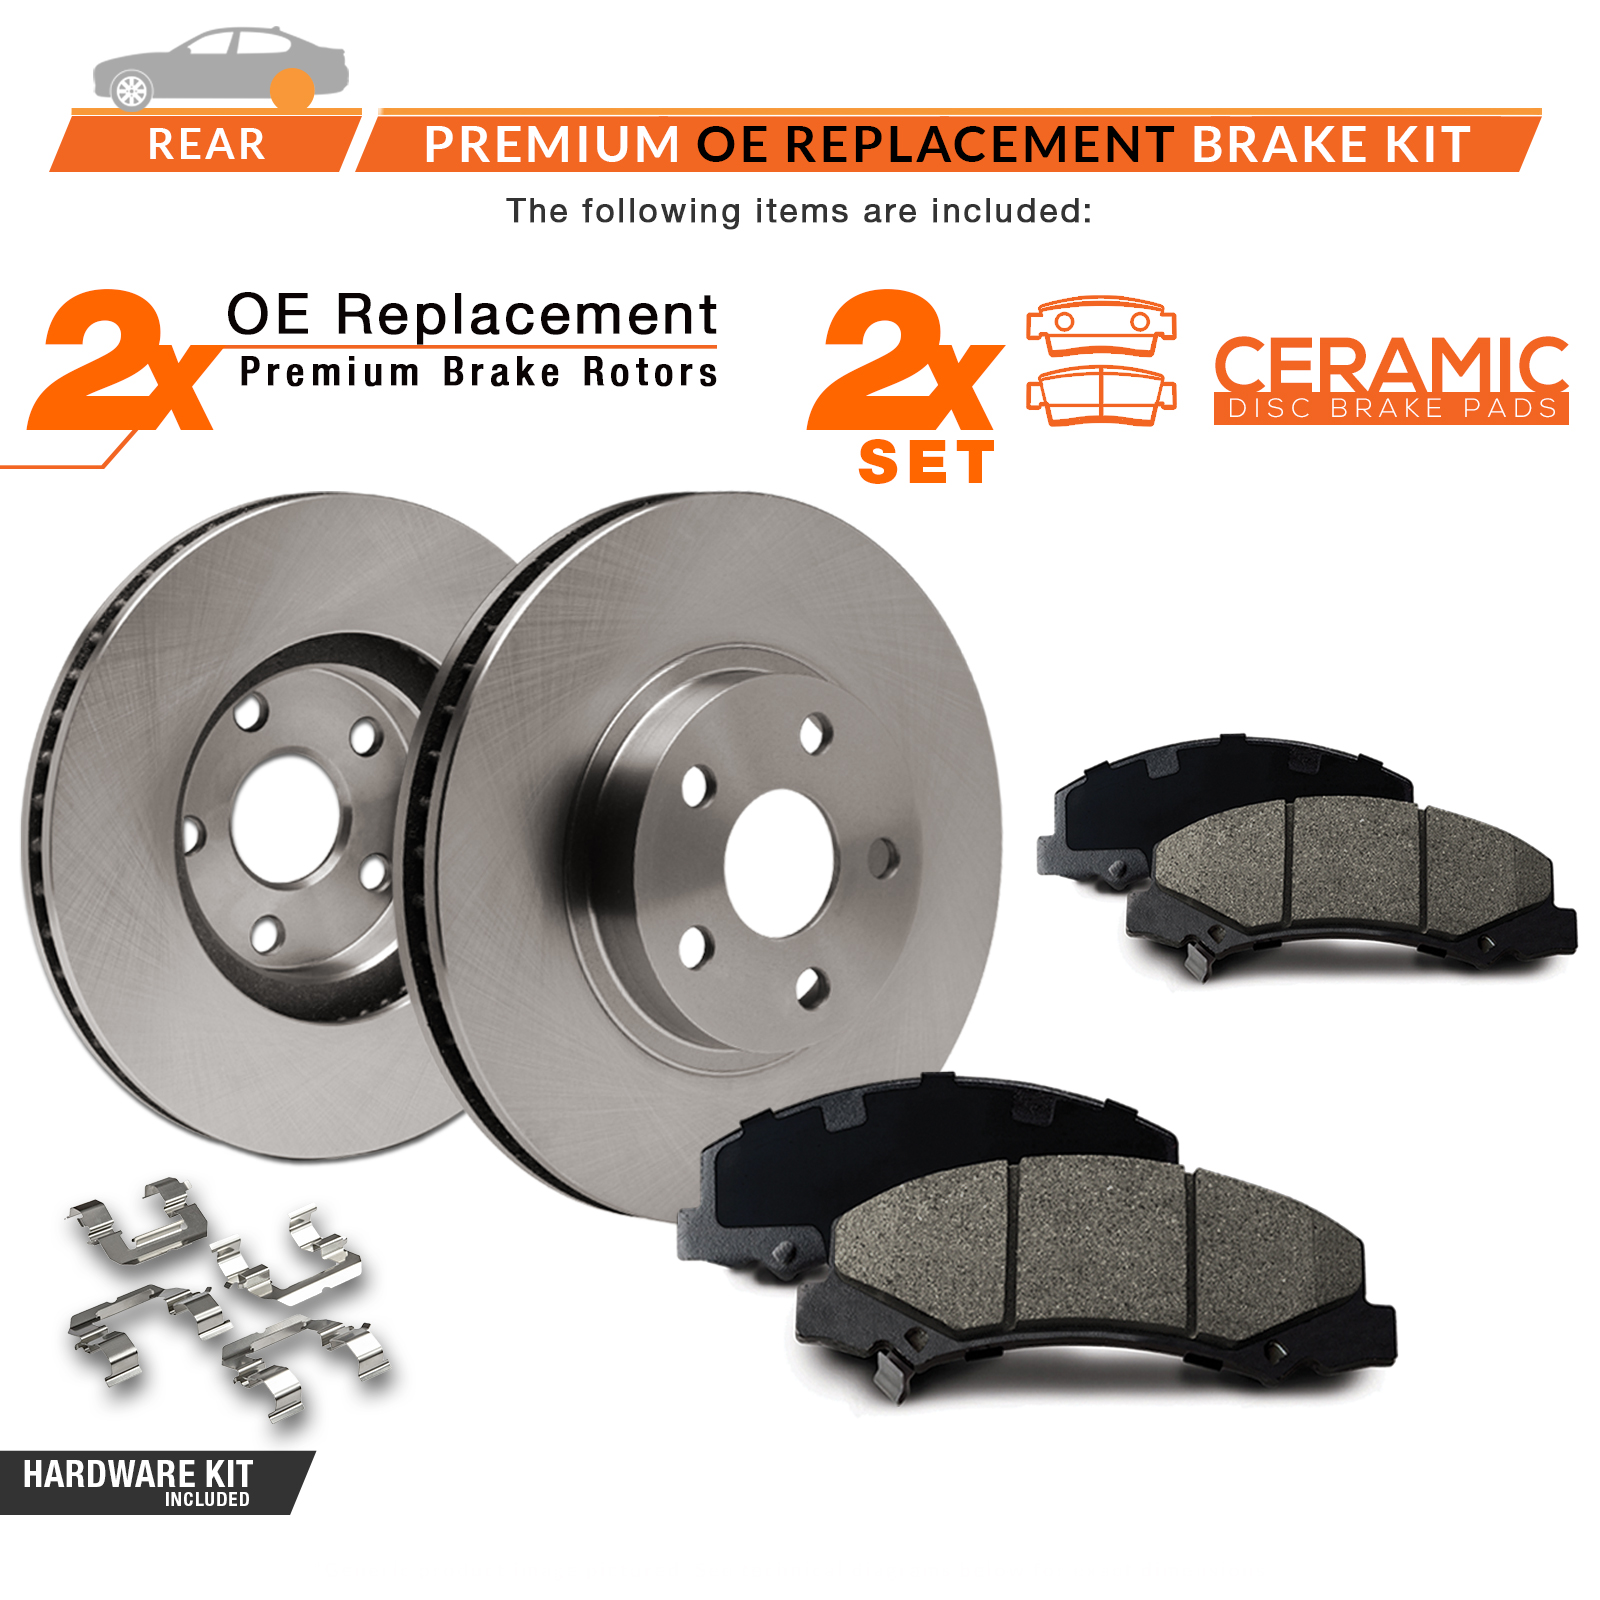 REAR-KIT-OE-Replacement-Brake-Rotors-with-Ceramic-Pads-amp-Hardware-Kit thumbnail 2